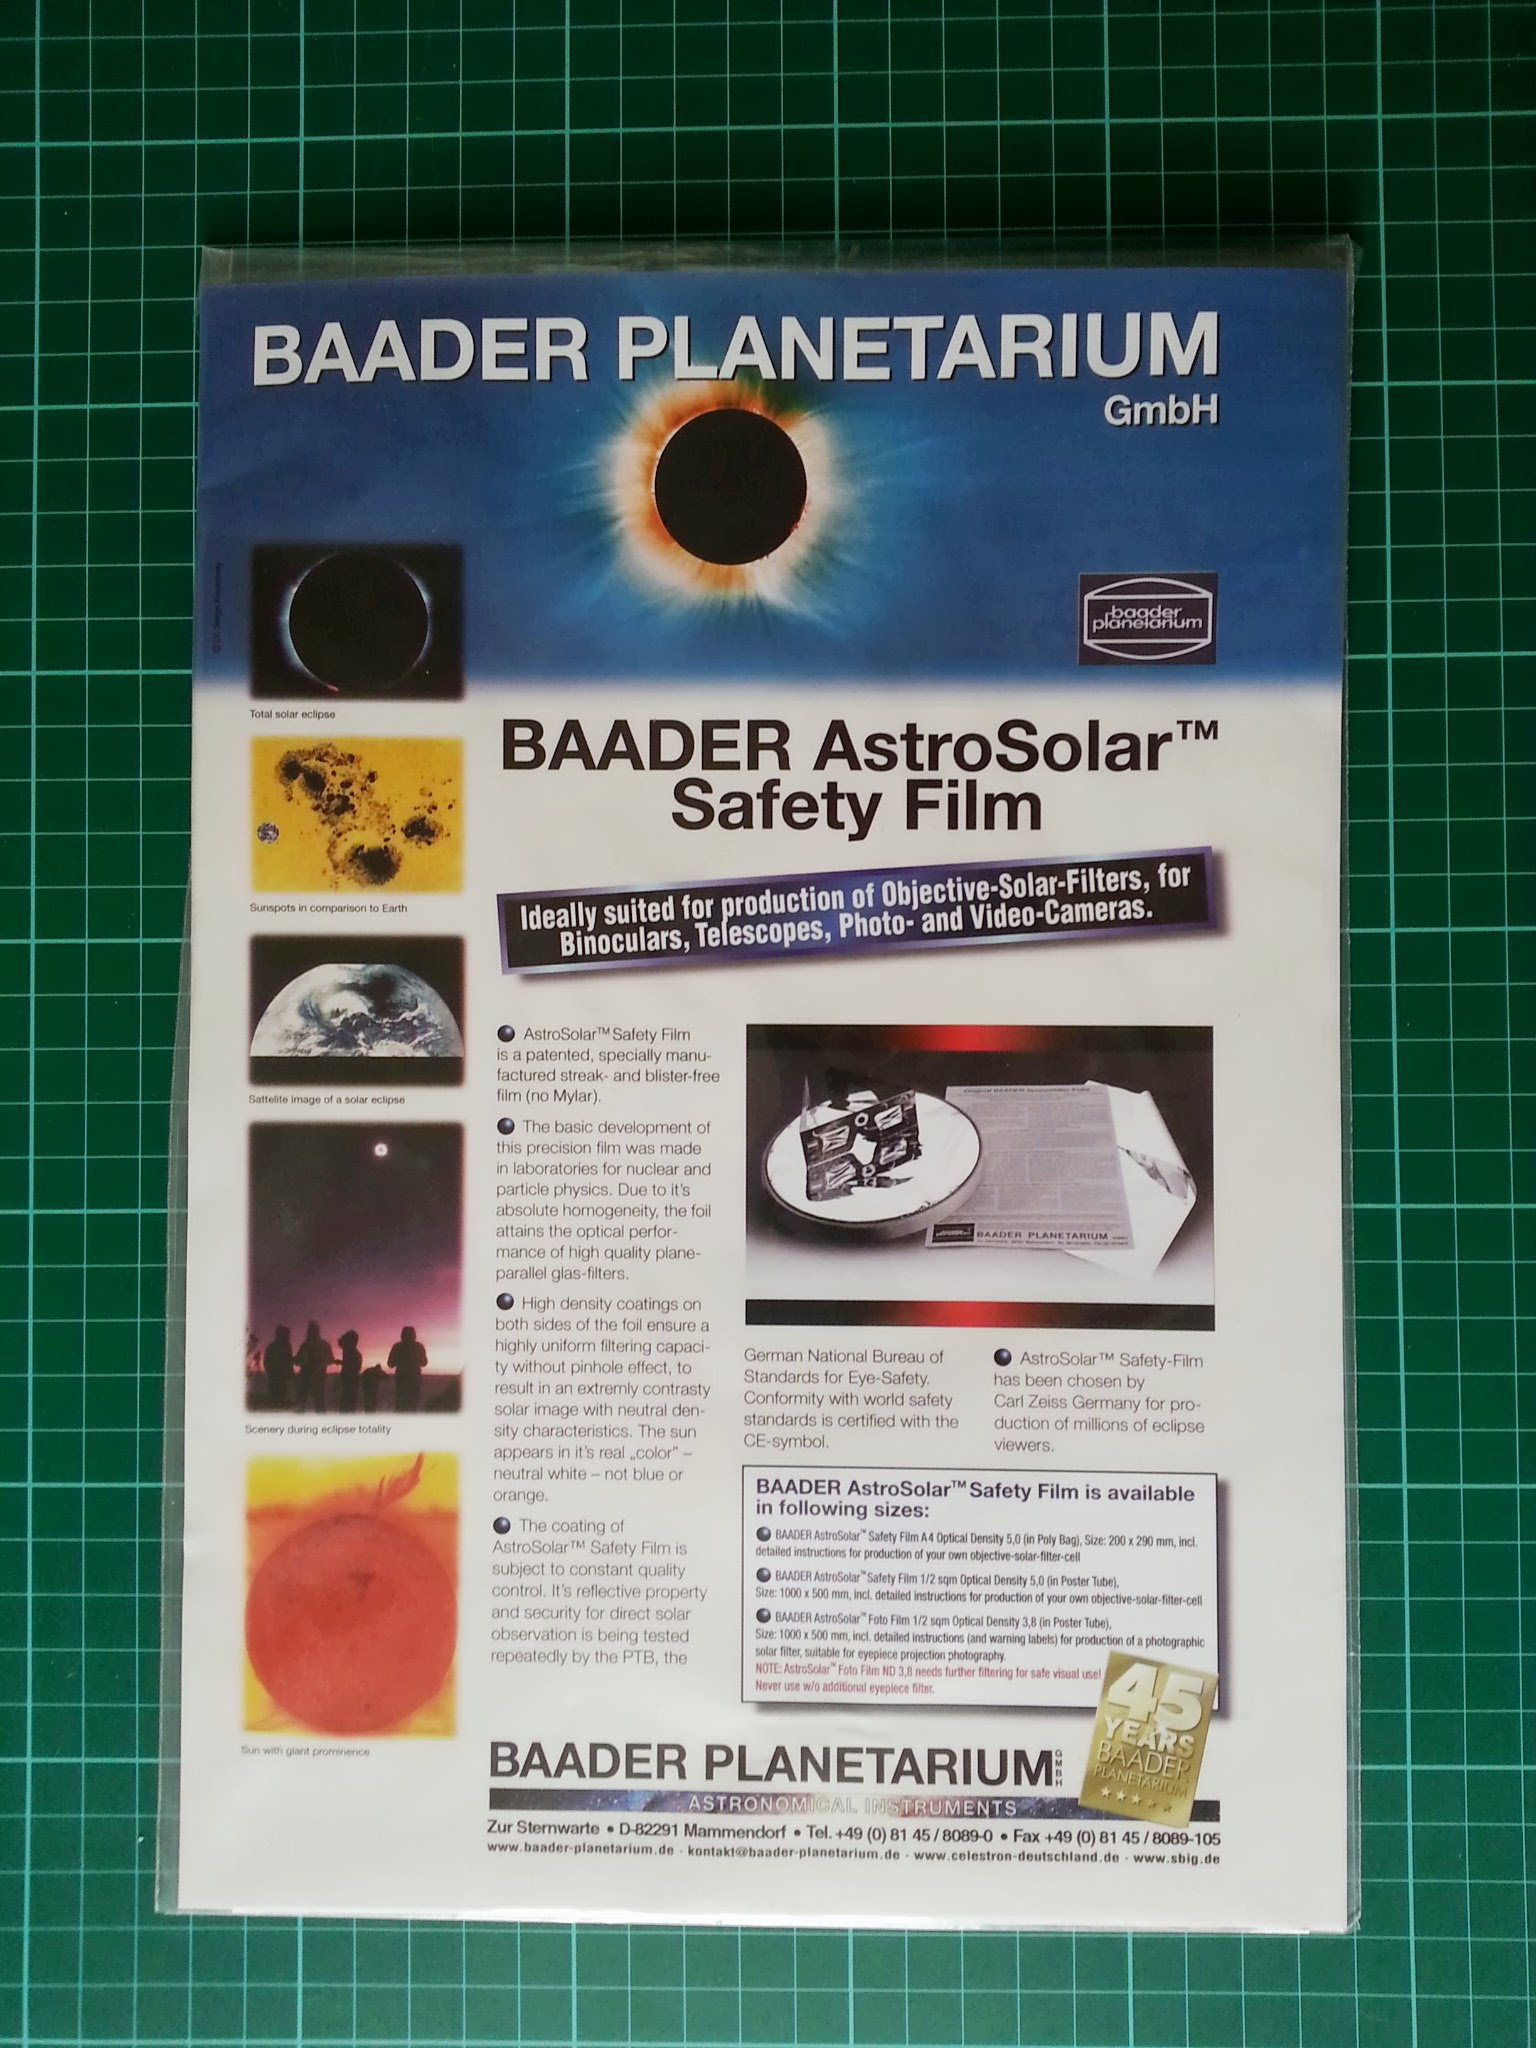 Baader AstroSolar Safety Film